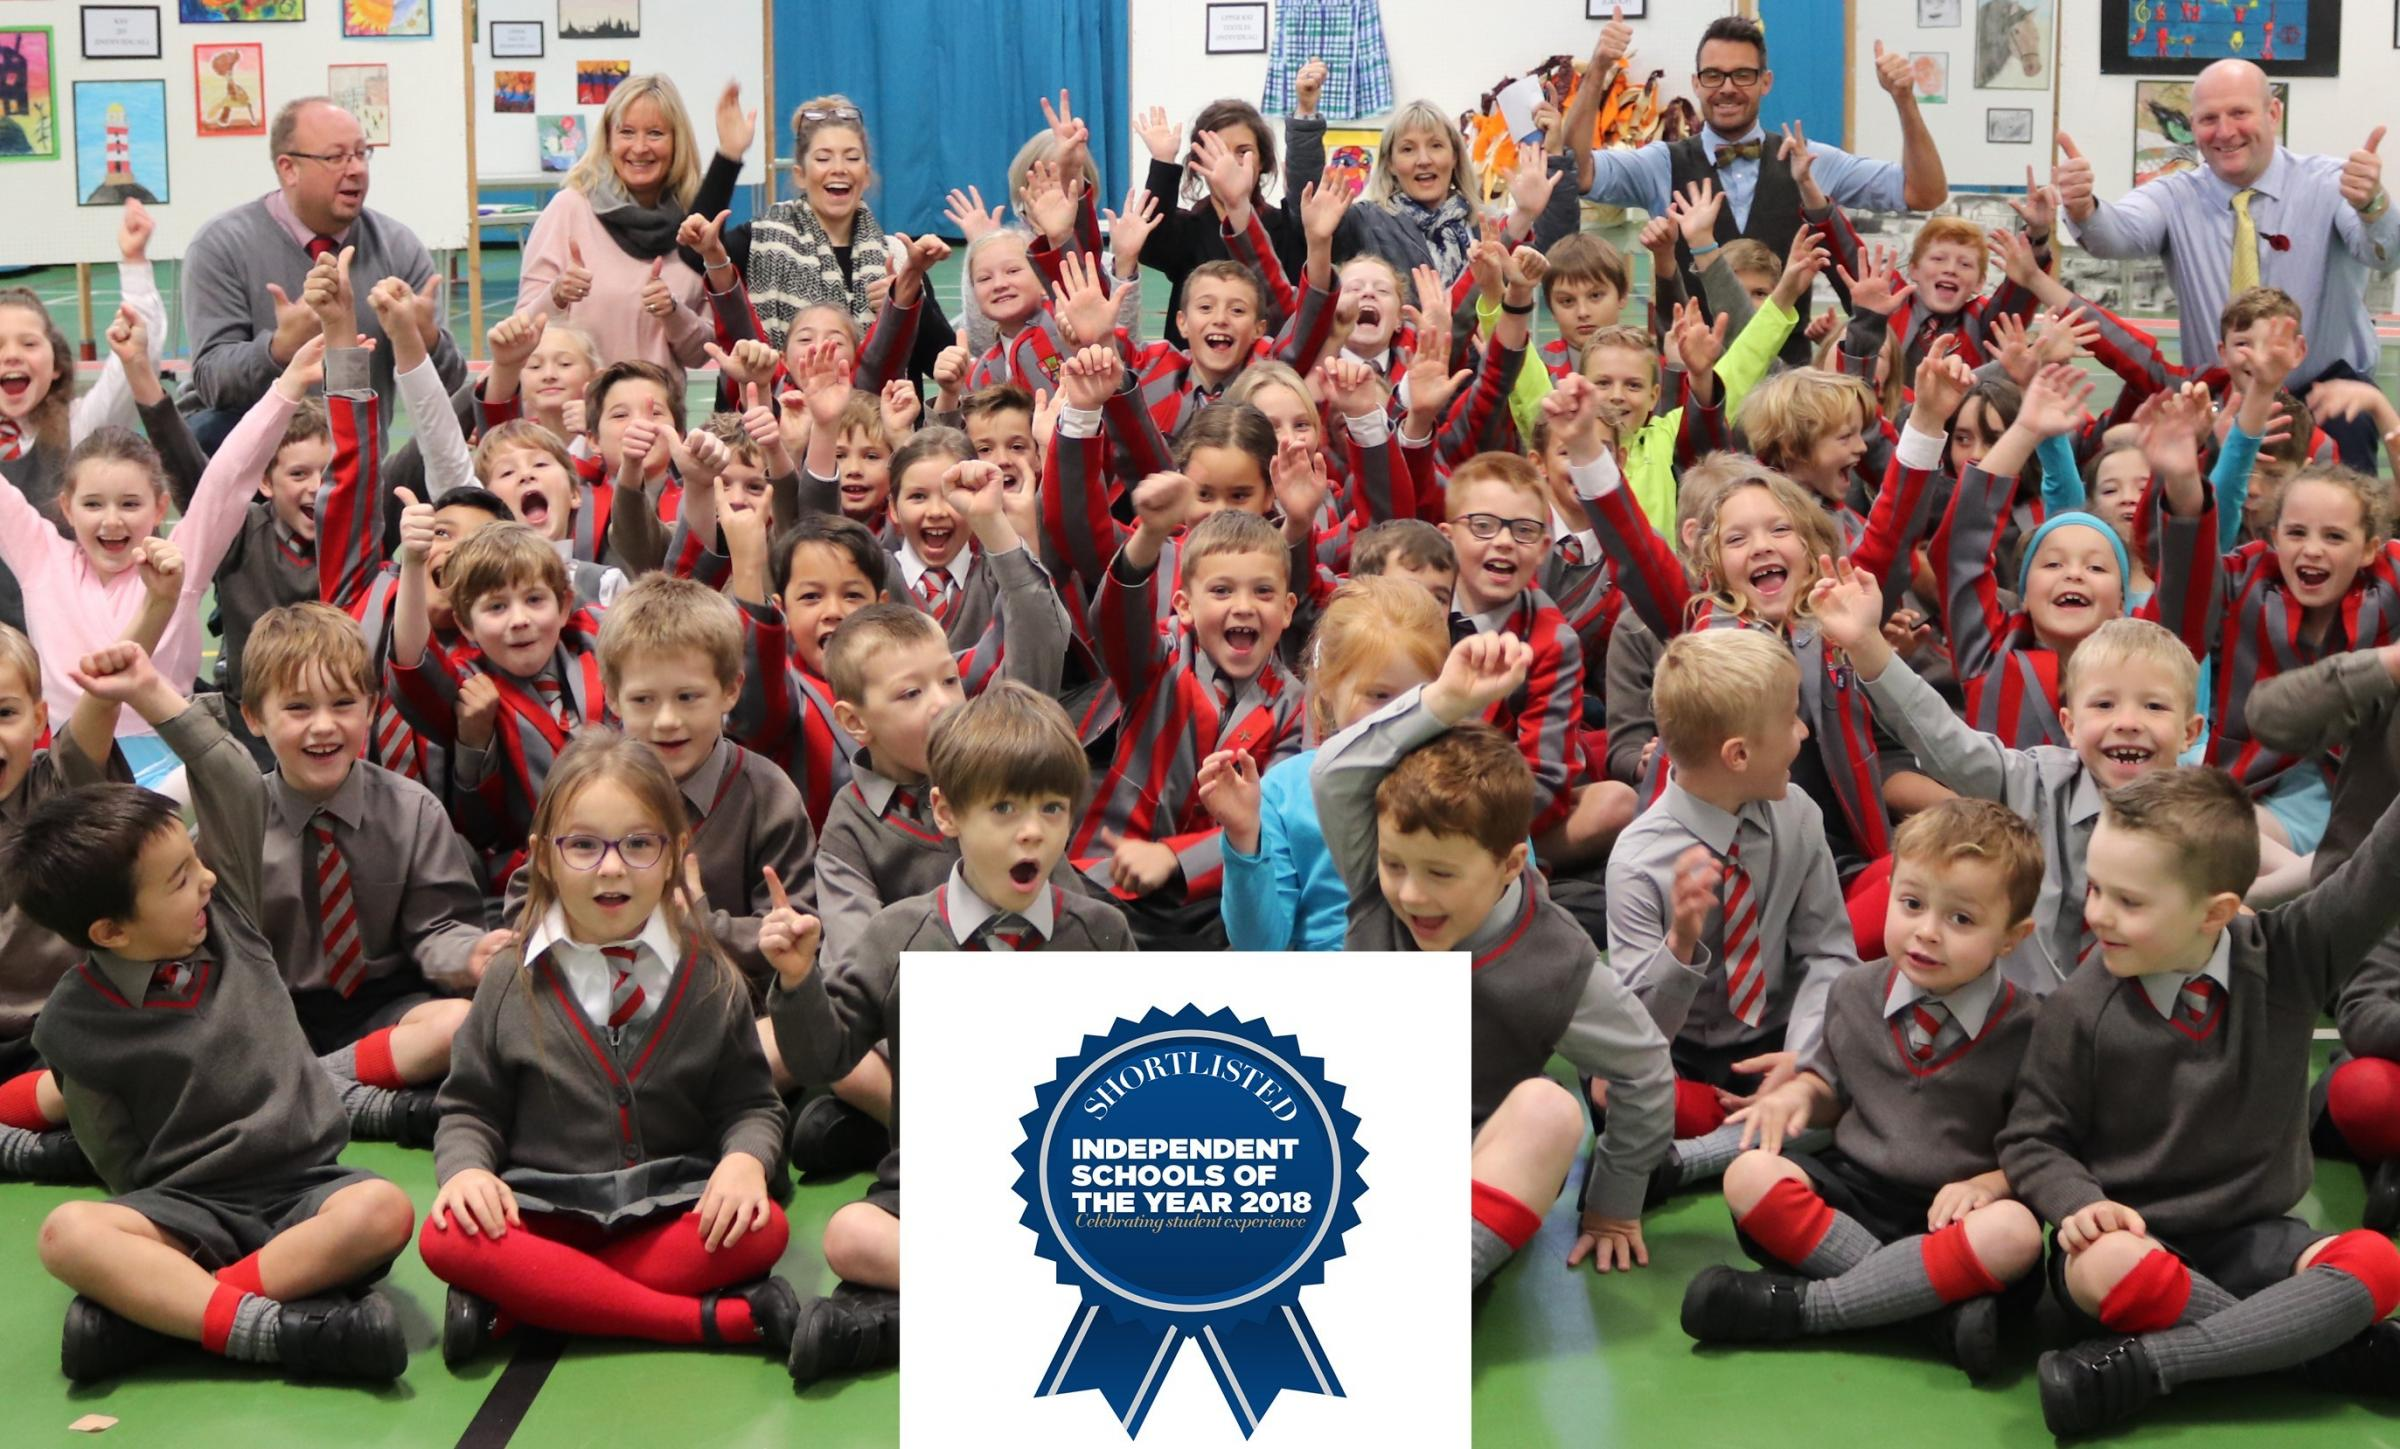 Ghyll Royd School pupils cheering on hearing the announcement that their school had been shortlisted for the Independent School of the Year awards